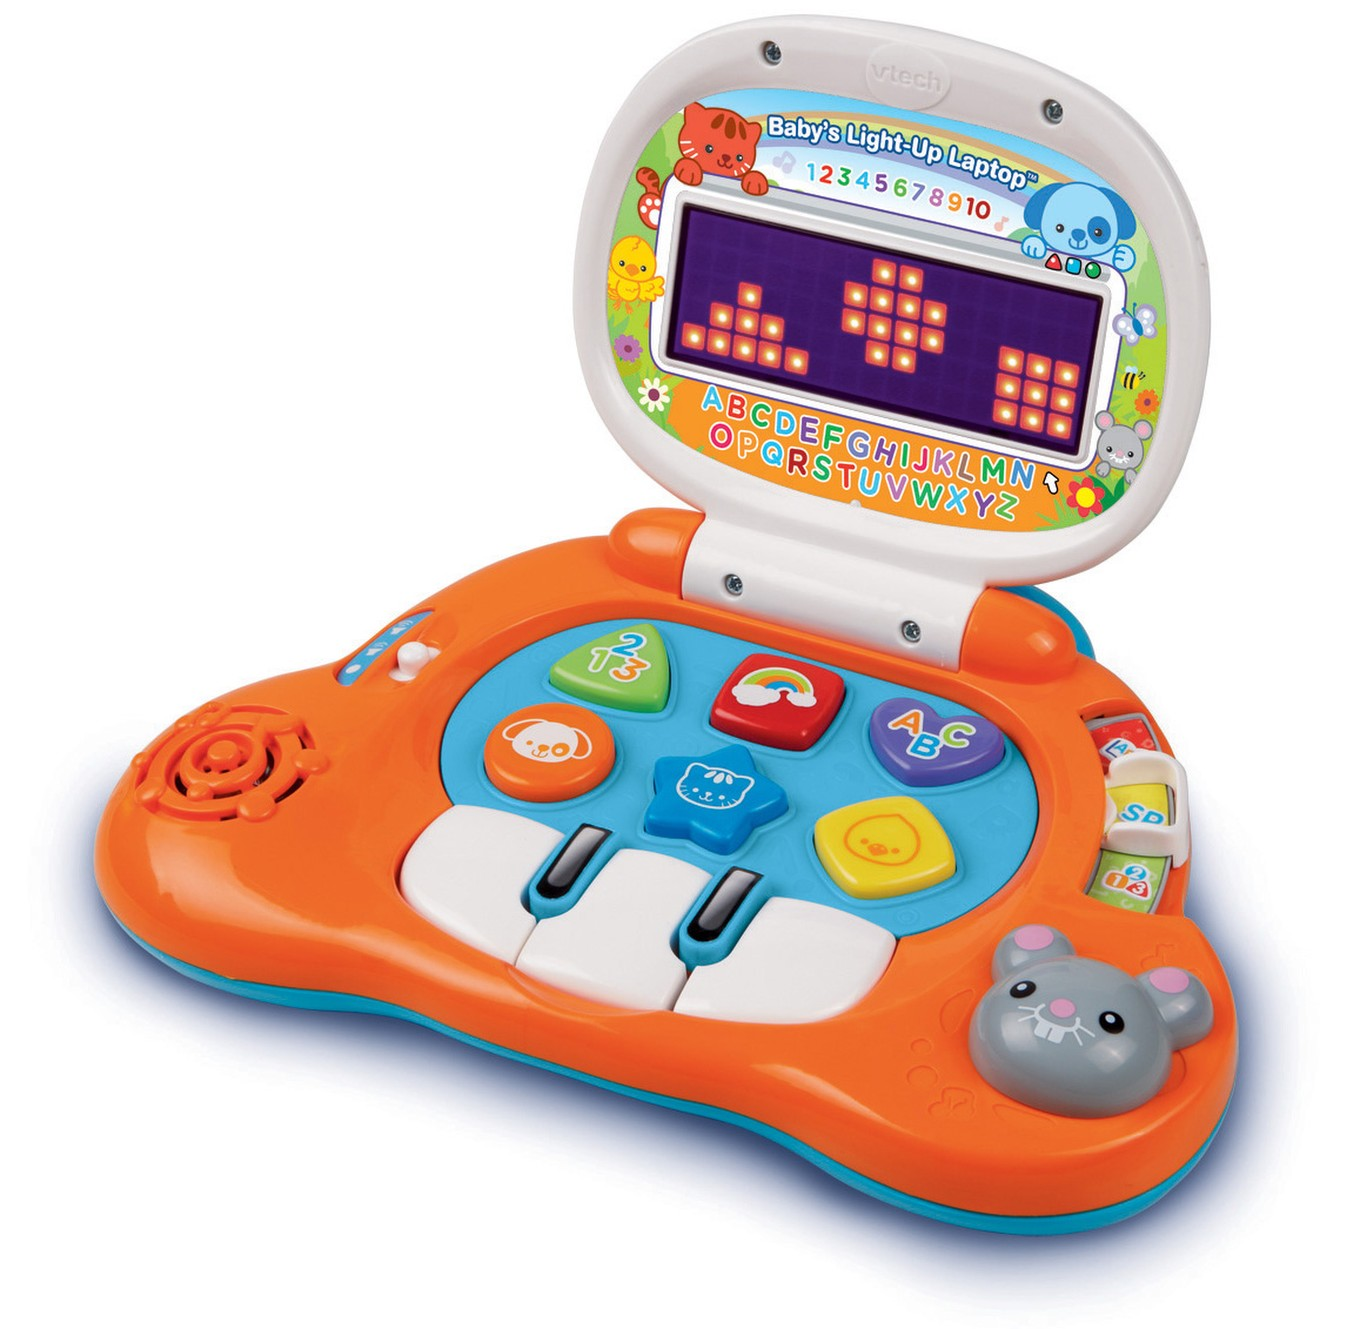 Baby S Light Up Laptop Bilingual Learning Toy